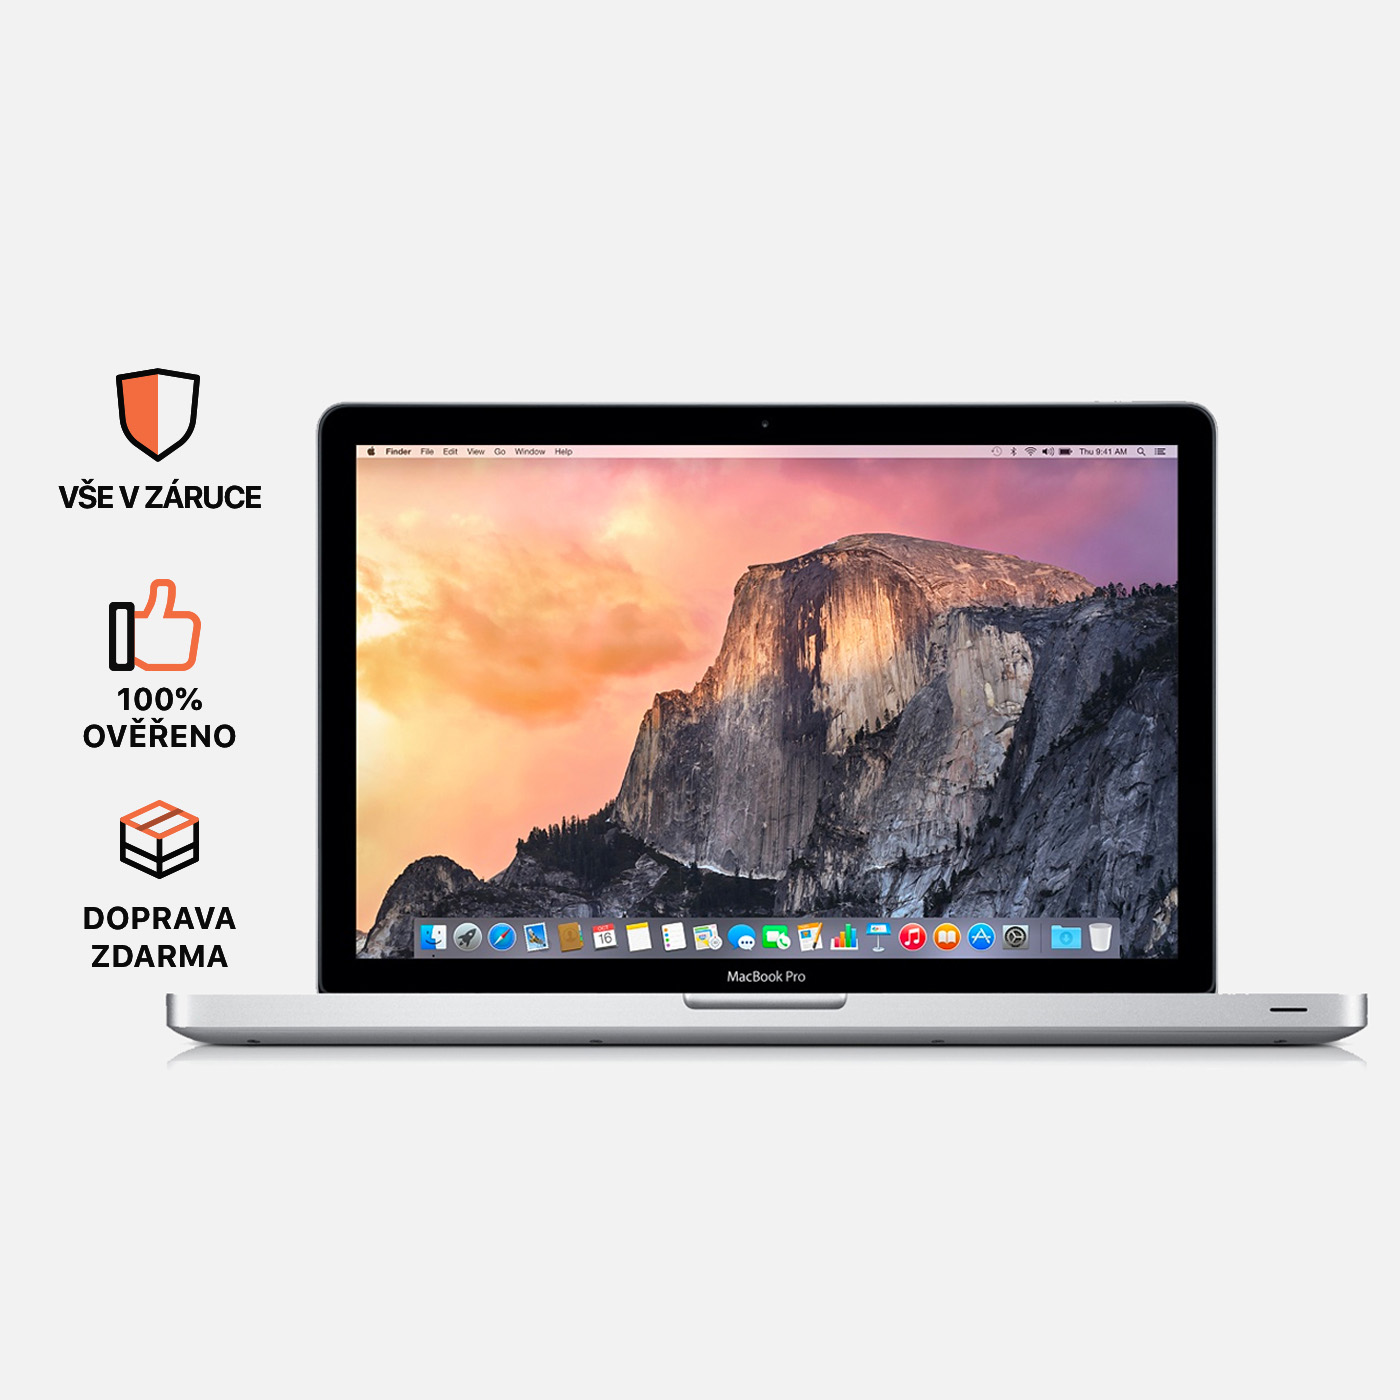 MacBook Pro 15, i7, rok 2011, 4GB RAM, SSD: 512GB